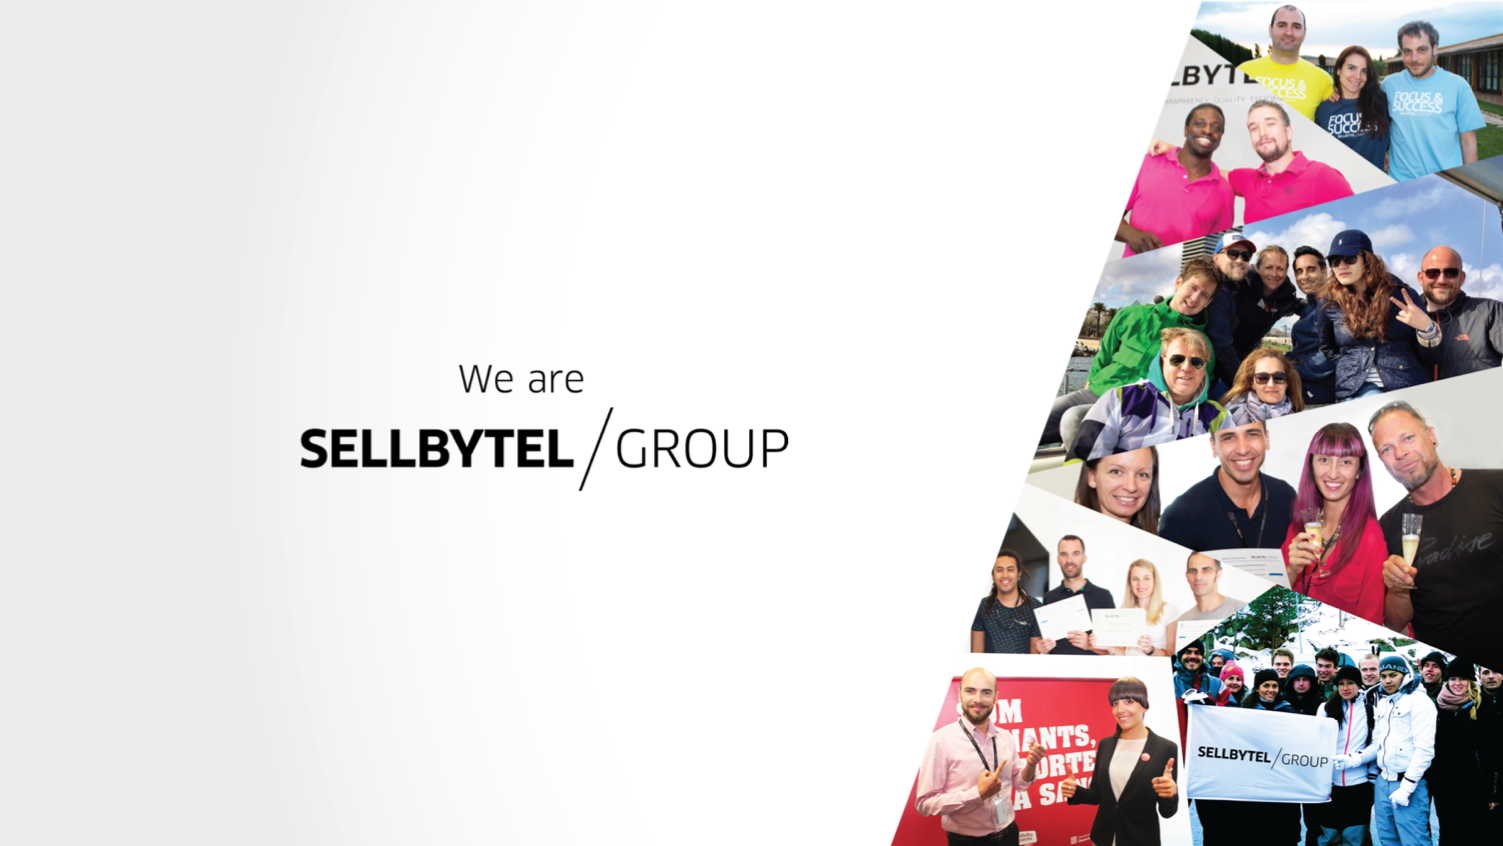 Jobs offers sellbytel with europelanguagejobs